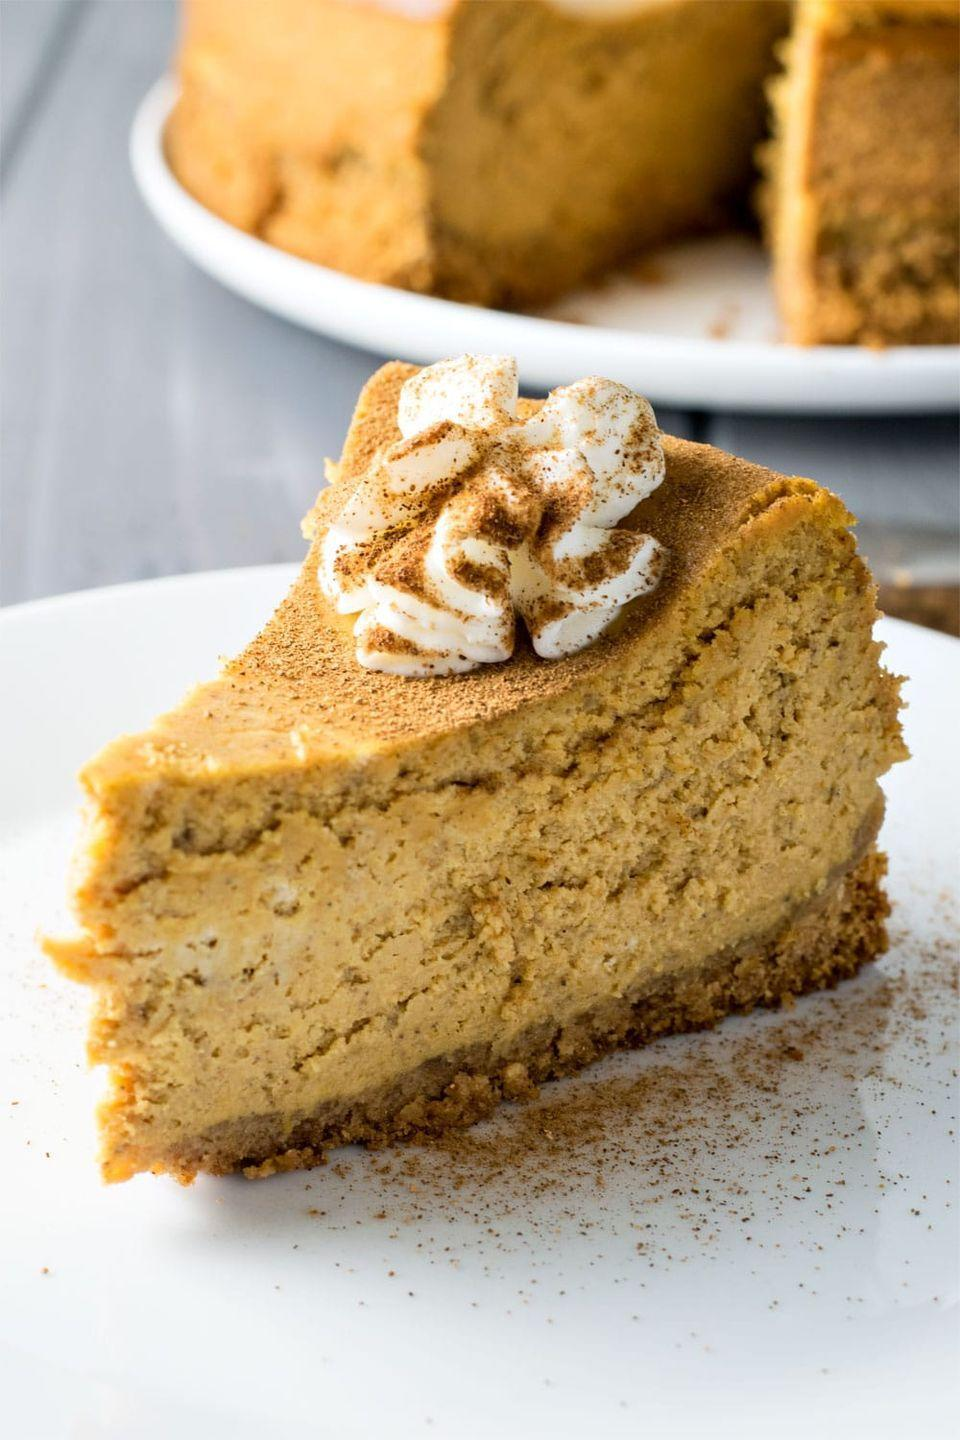 """<p>Rethink that pumpkin pie you were going to serve on Turkey Day.</p><p>Get the recipe from <a href=""""http://homemadehooplah.com/recipes/classic-pumpkin-spice-cheesecake/#comments"""" rel=""""nofollow noopener"""" target=""""_blank"""" data-ylk=""""slk:Homemade Hooplah"""" class=""""link rapid-noclick-resp"""">Homemade Hooplah</a>.</p>"""